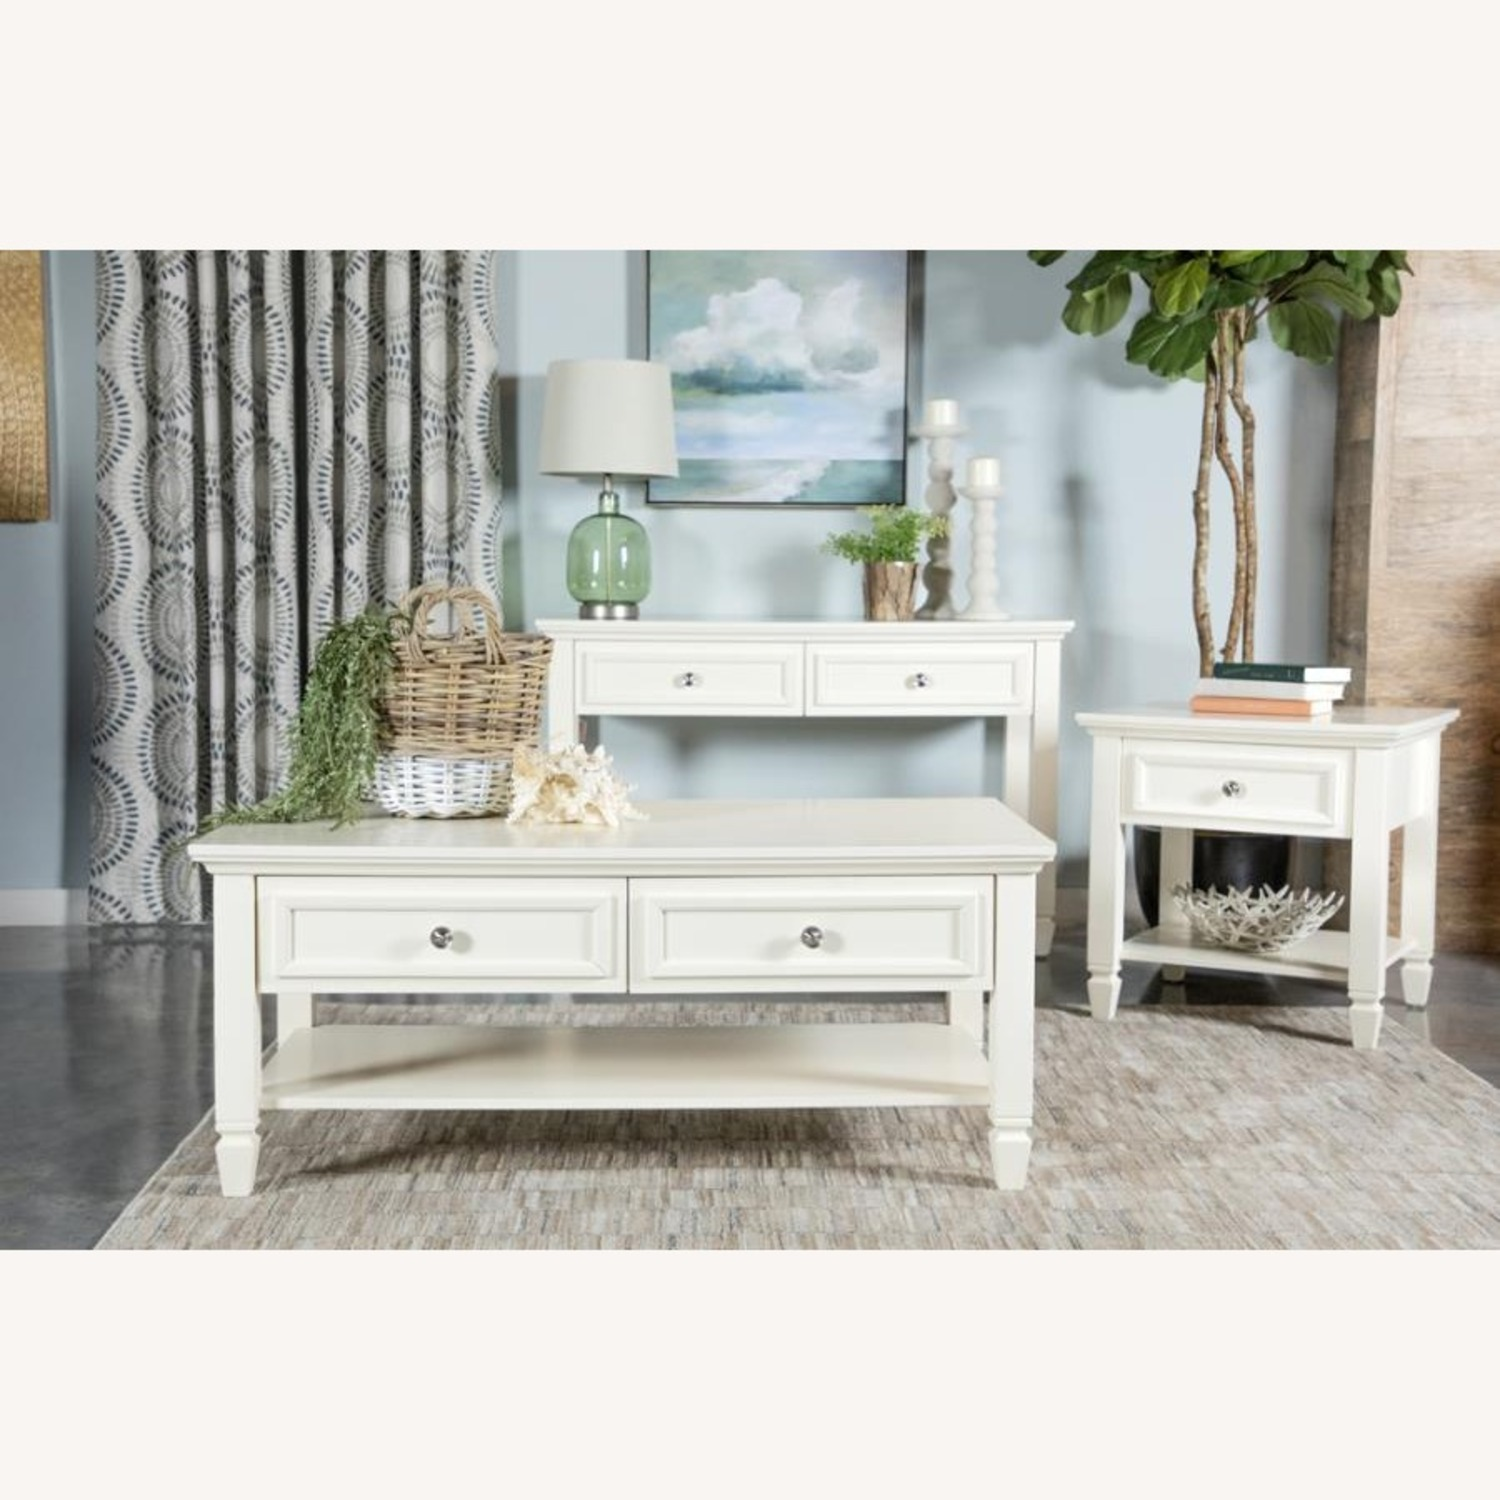 End Table In Brushed Nickel Finish W/ Lower Shelf - image-3